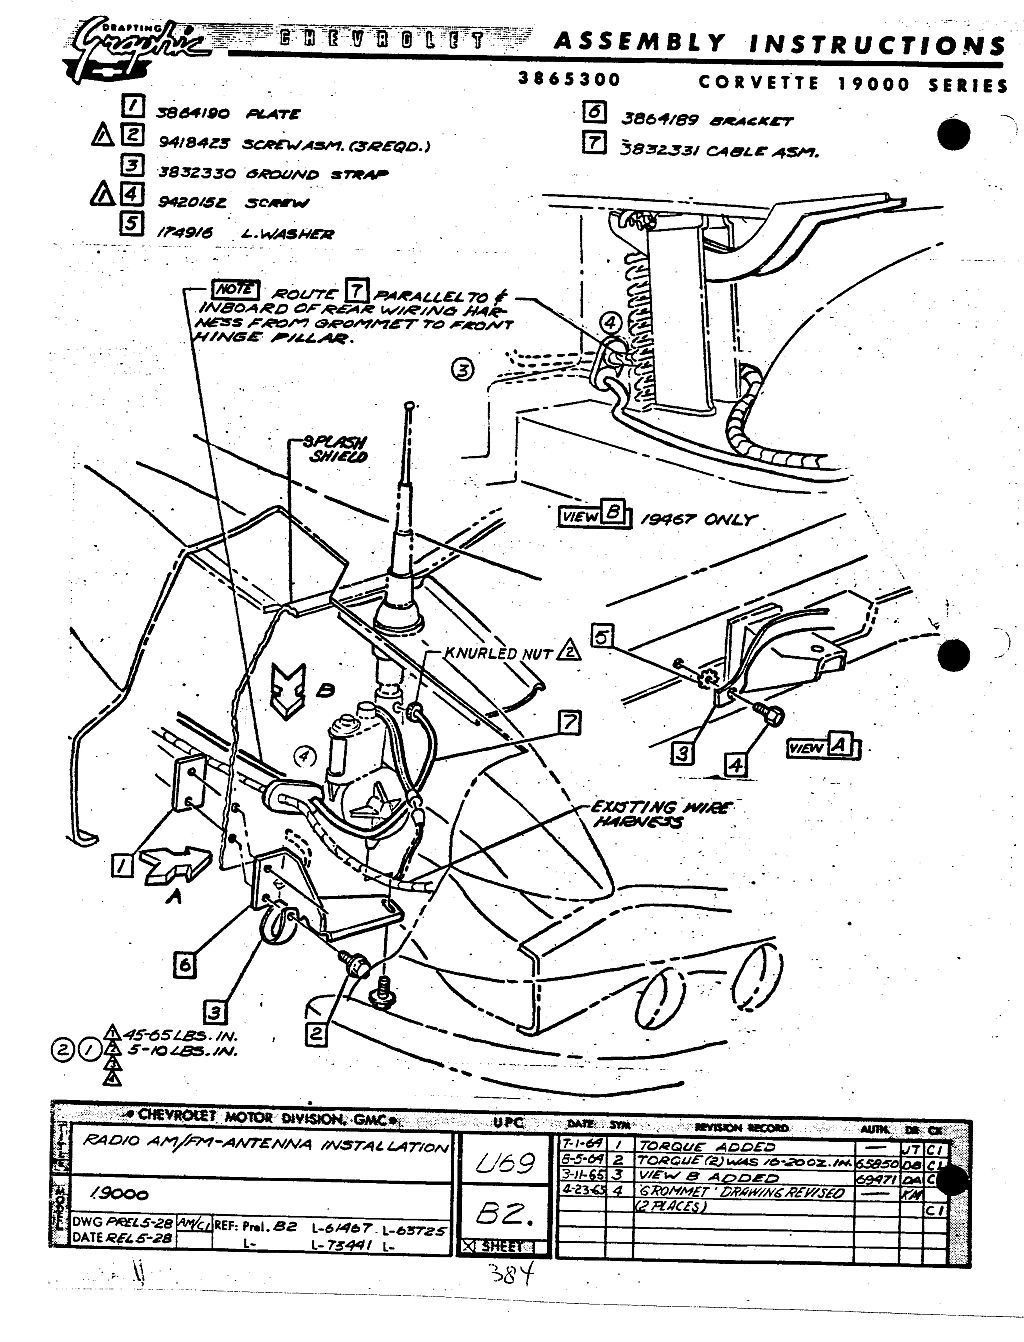 C1 Corvette Wiring Diagram